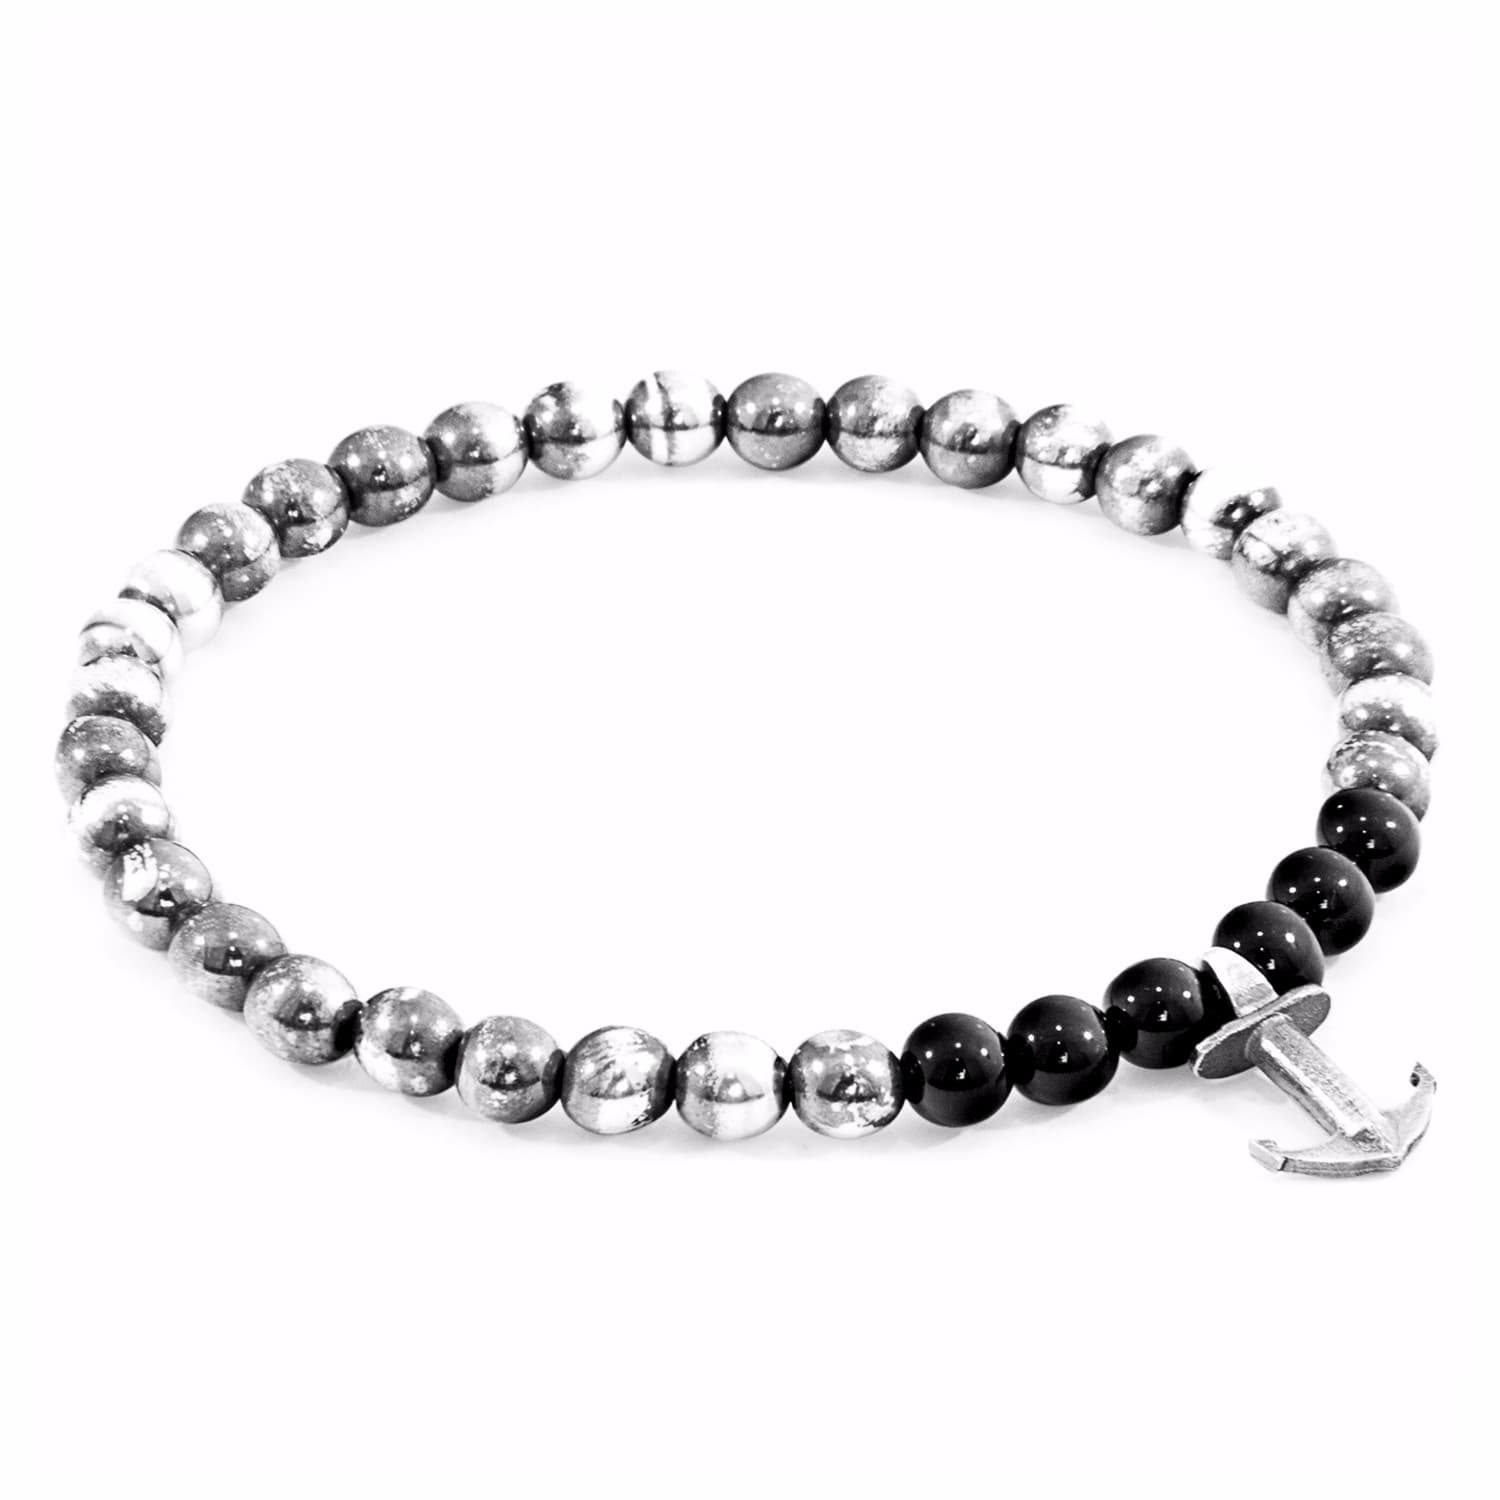 Anchor & Crew Black Onyx Port Silver And Stone Bracelet - 21cm 5XUBEKd